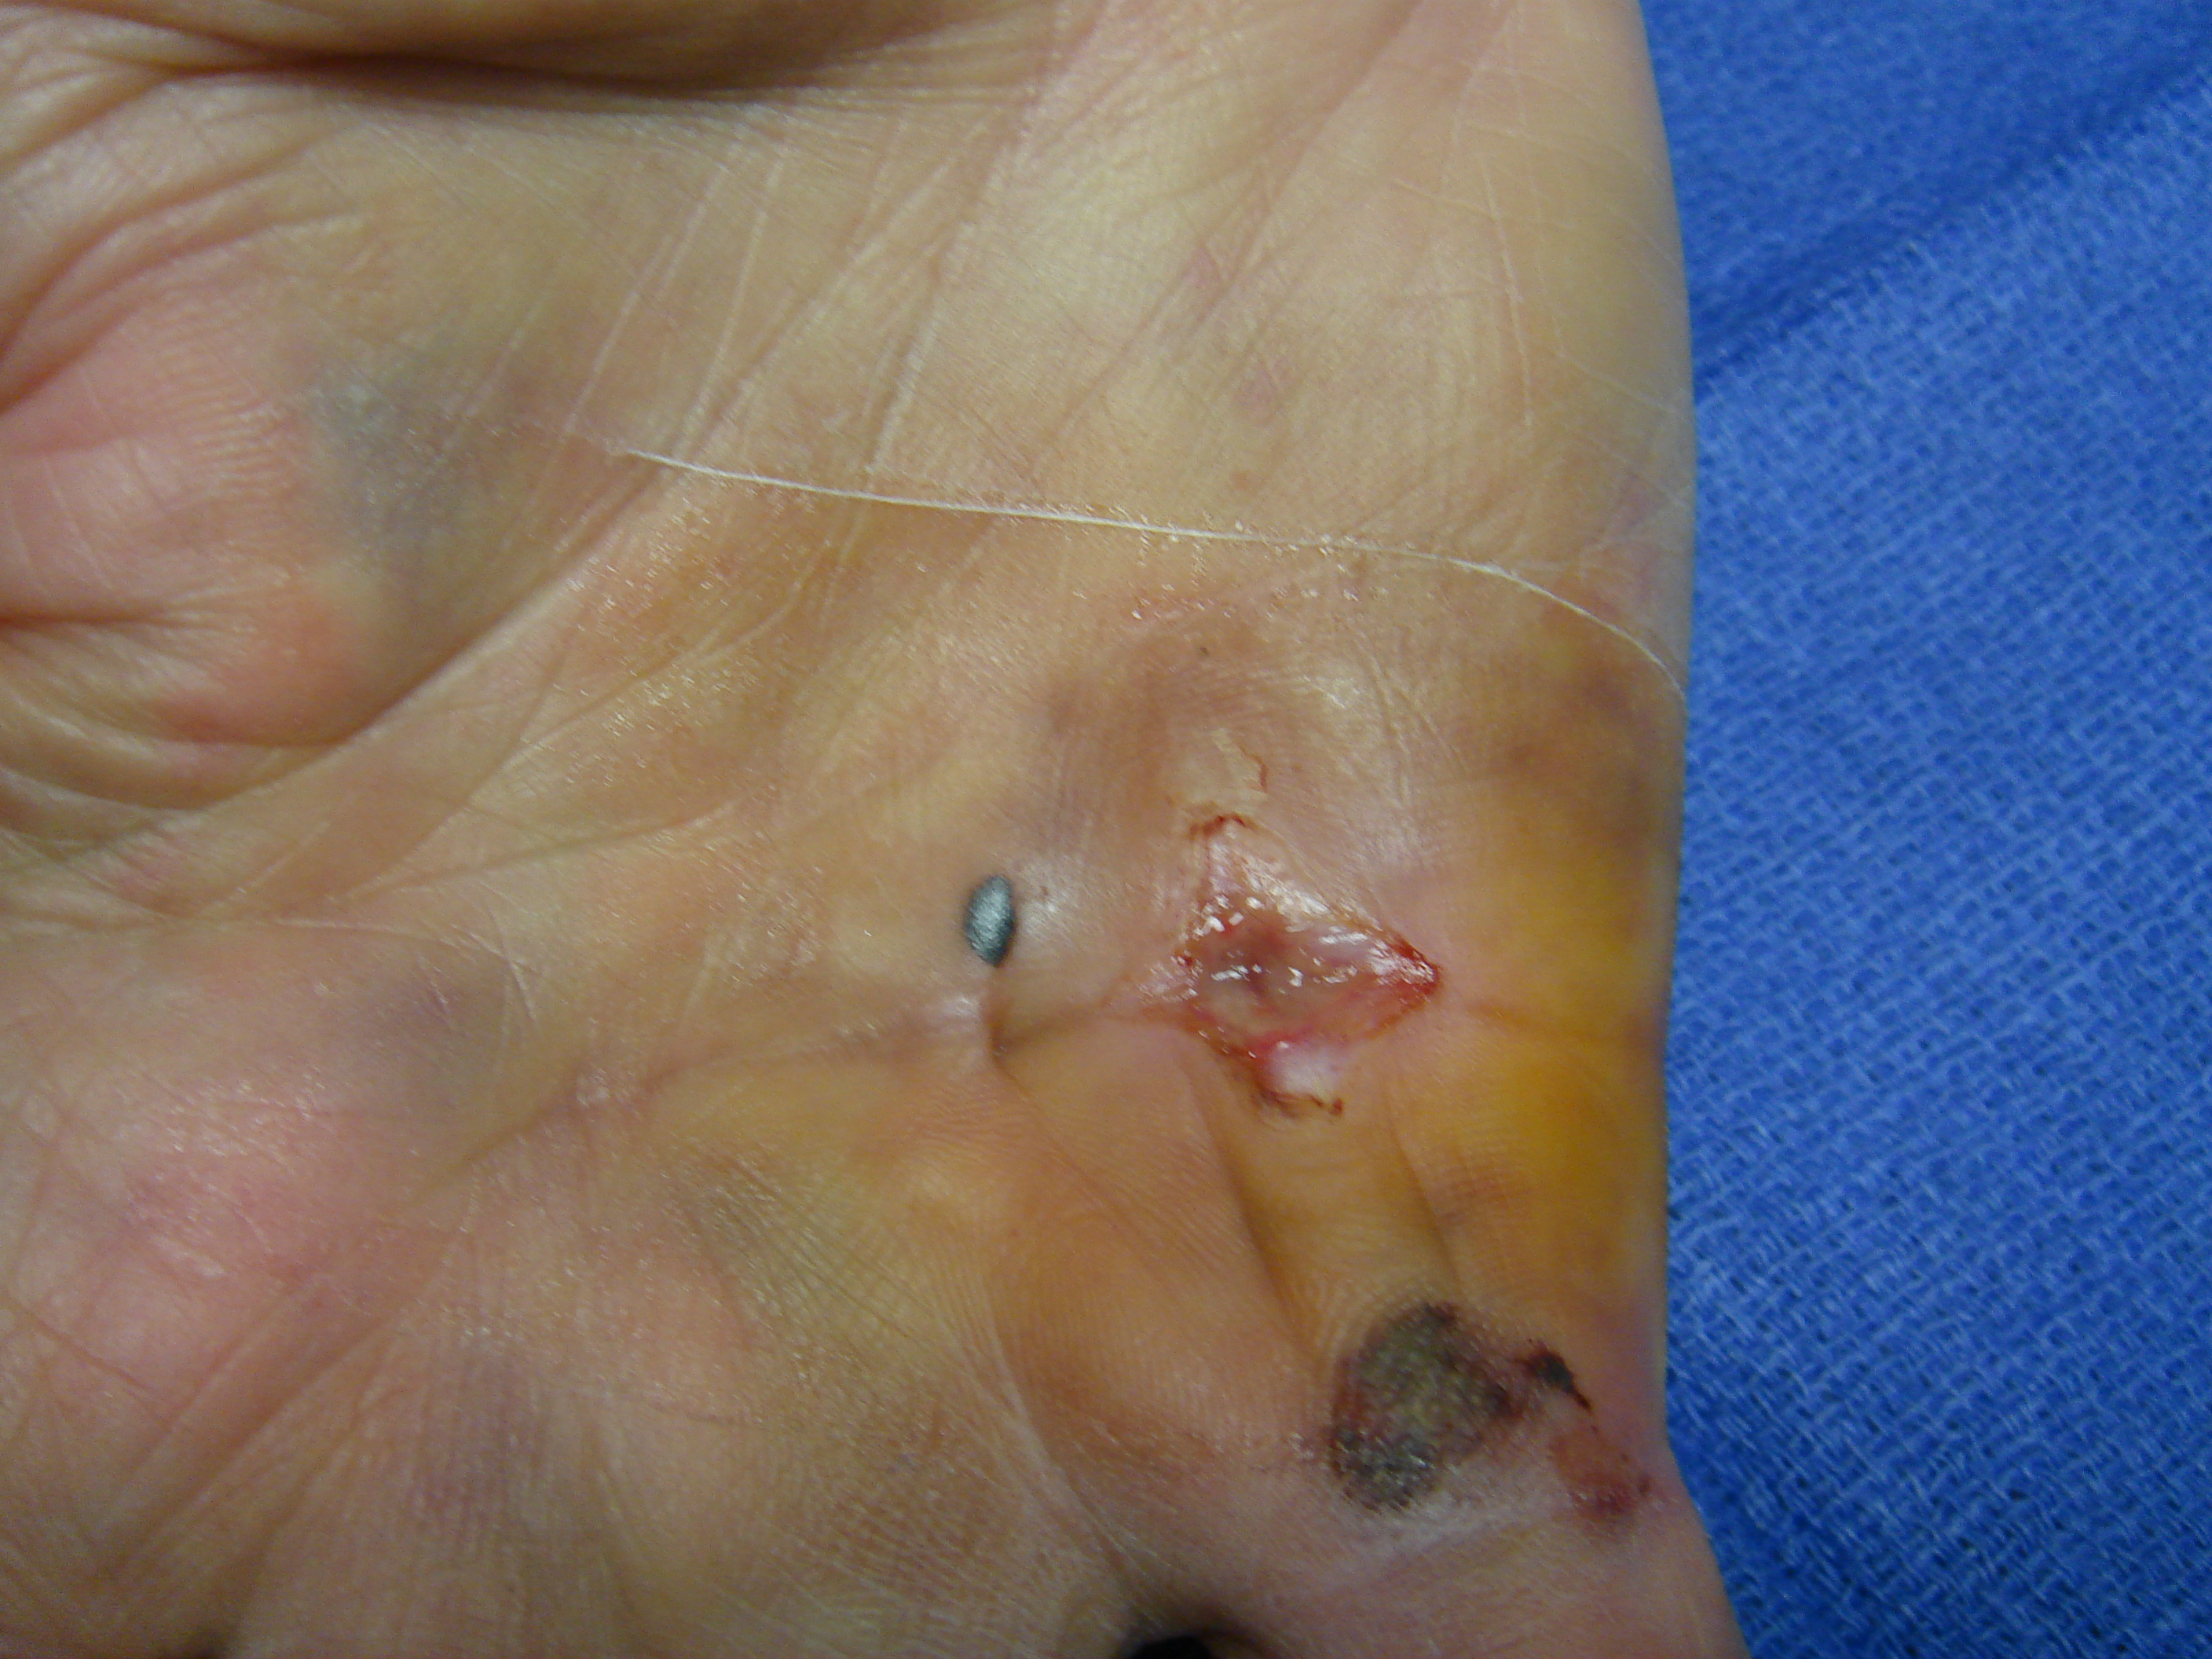 Figure 2c: These photographs illustrate the patient's hand 7 days post-enzyme injection. The custom thermoplastic night splint is shown; the palmar skin tear and MP crease bruise are healing.